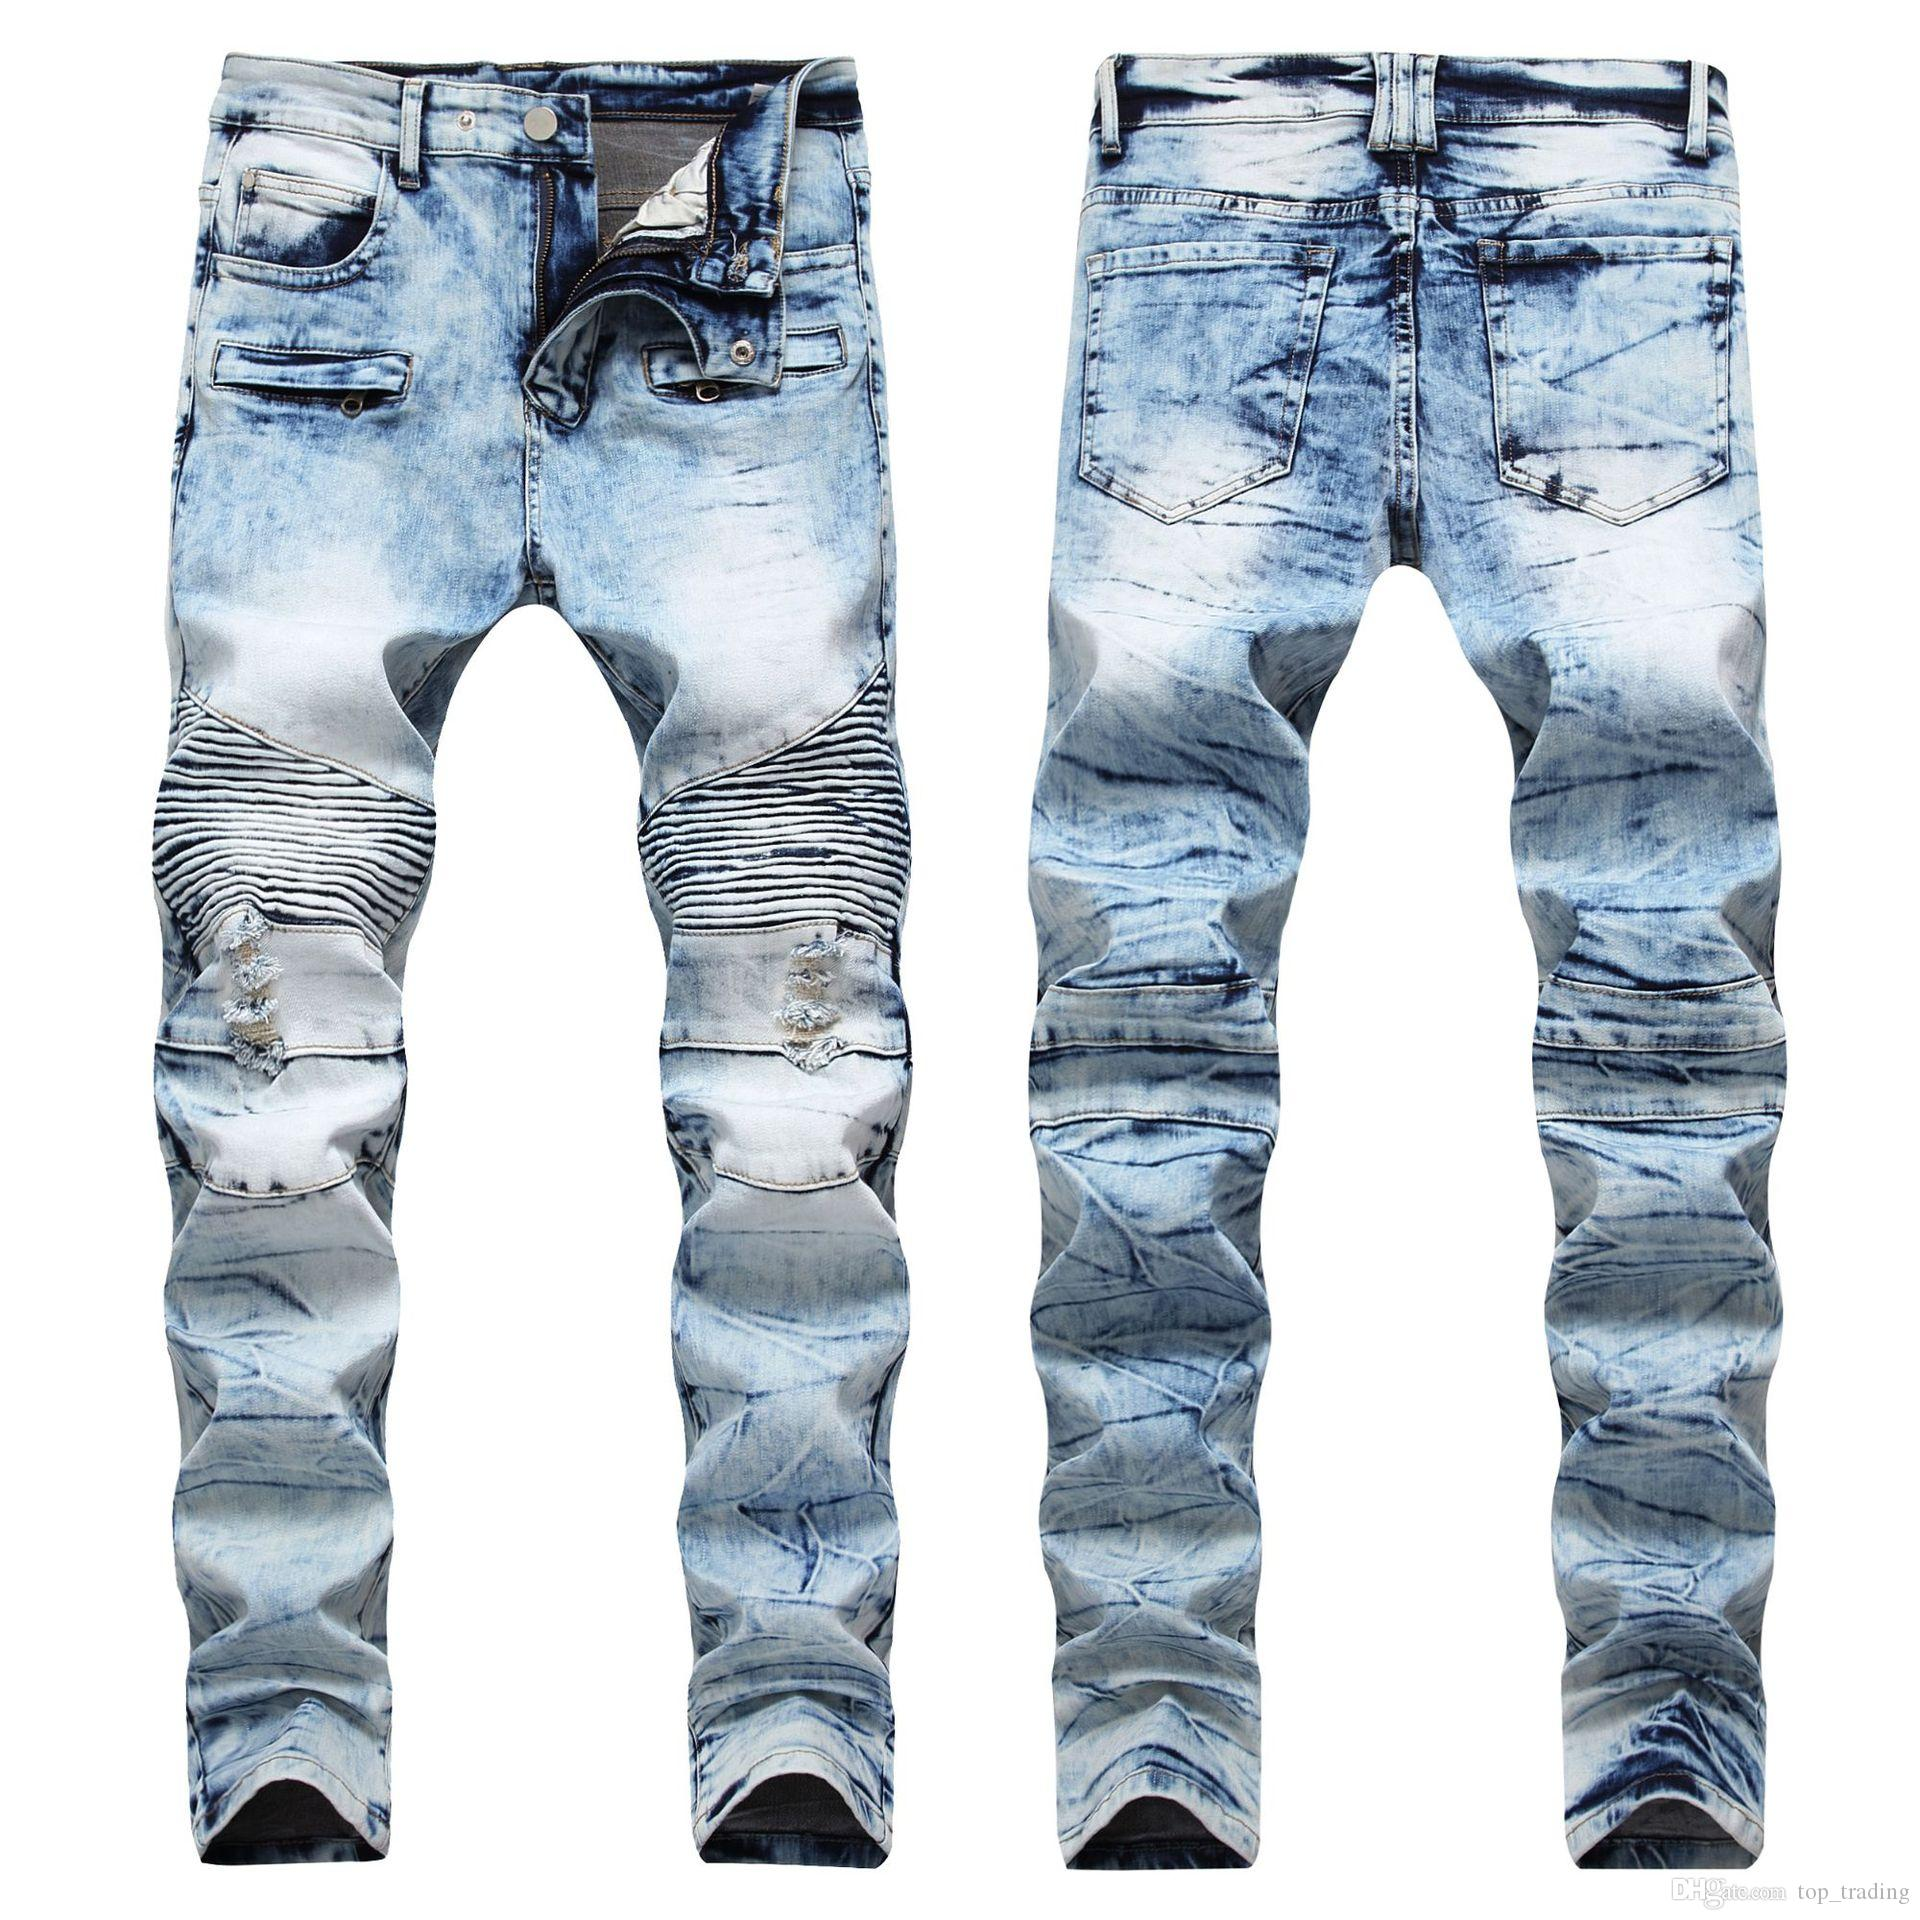 59c45b59c60ca 2019 Men Distressed Ripped Jeans Fashion Designer Skinny Slim Fit Motorcycle  Biker Jeans Causal Denim Pants Streetwear Style Mens Jeans Cool From ...